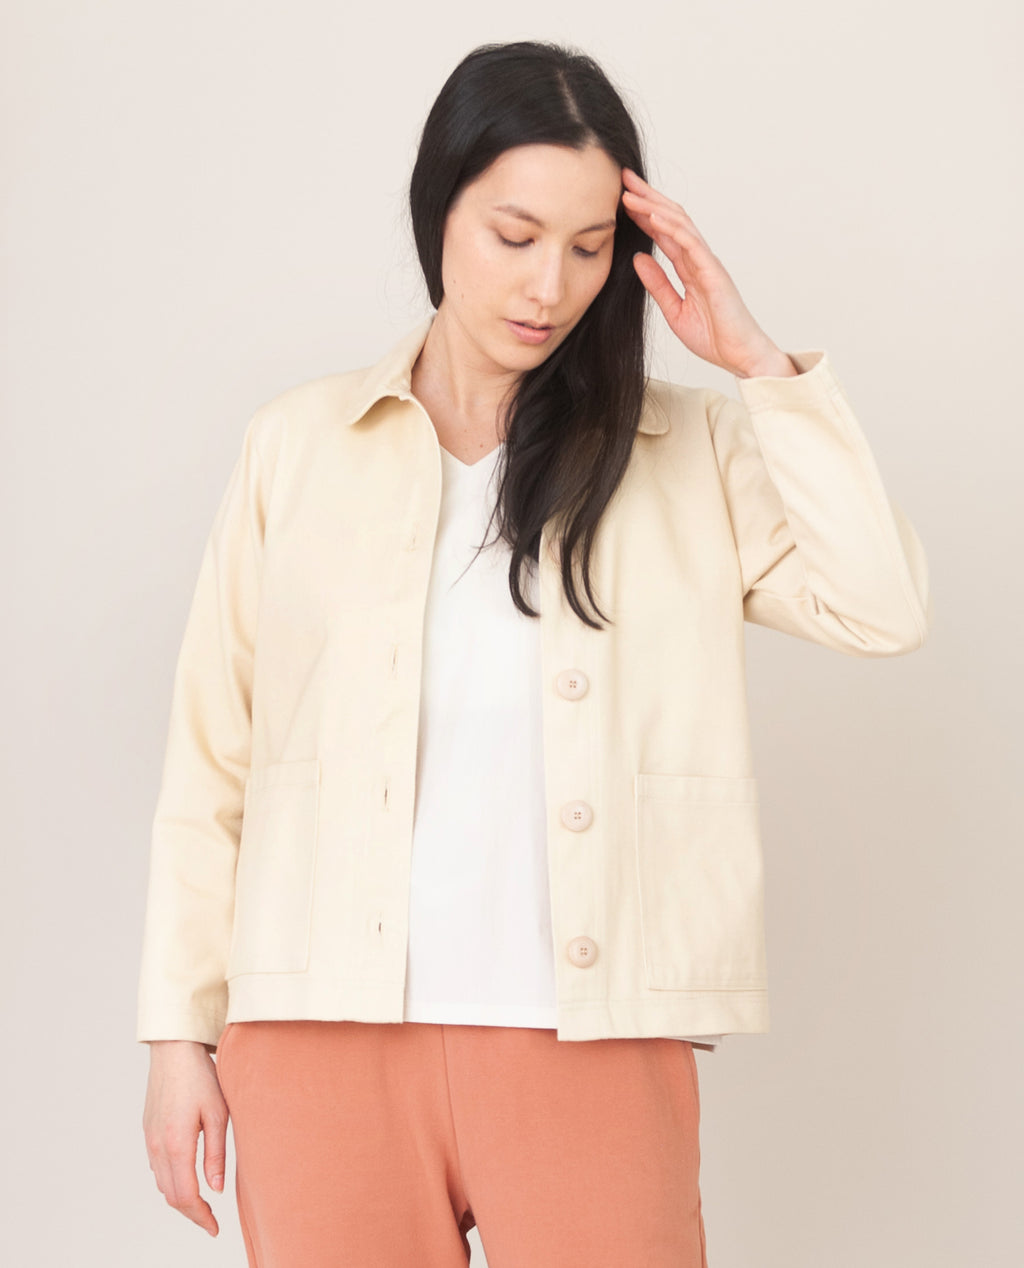 SHARON-DEE Cotton Jacket in Ivory